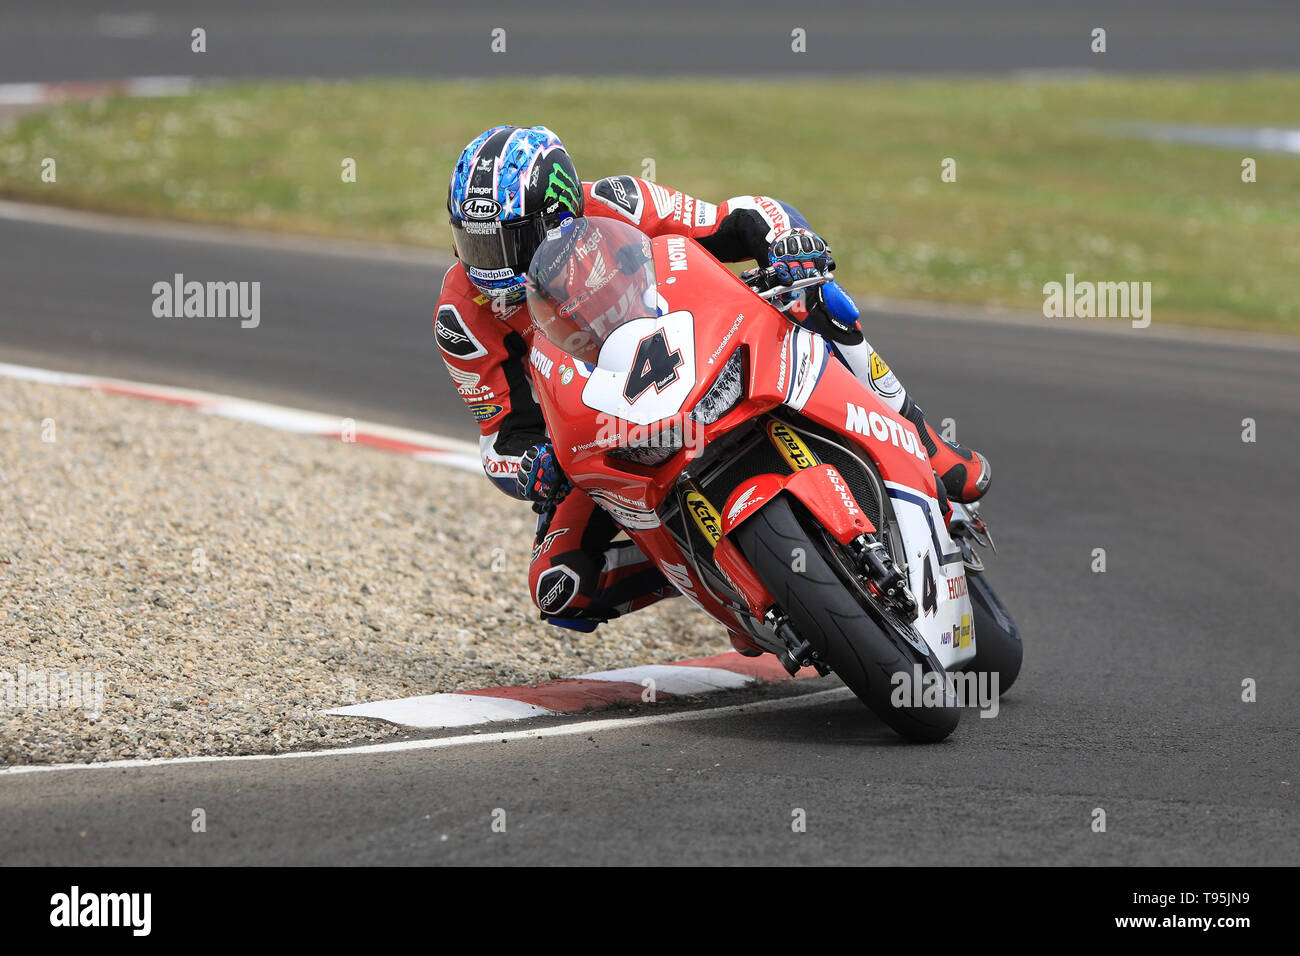 Portrush, Northern Ireland. 16th May, 2019. International North West 200 Motorcycle road racing, Thursday practice and evening racing; Ian Hutchinson on the Honda Racing Fireblade during the SuperBike qualifying session Credit: Action Plus Sports/Alamy Live News - Stock Image